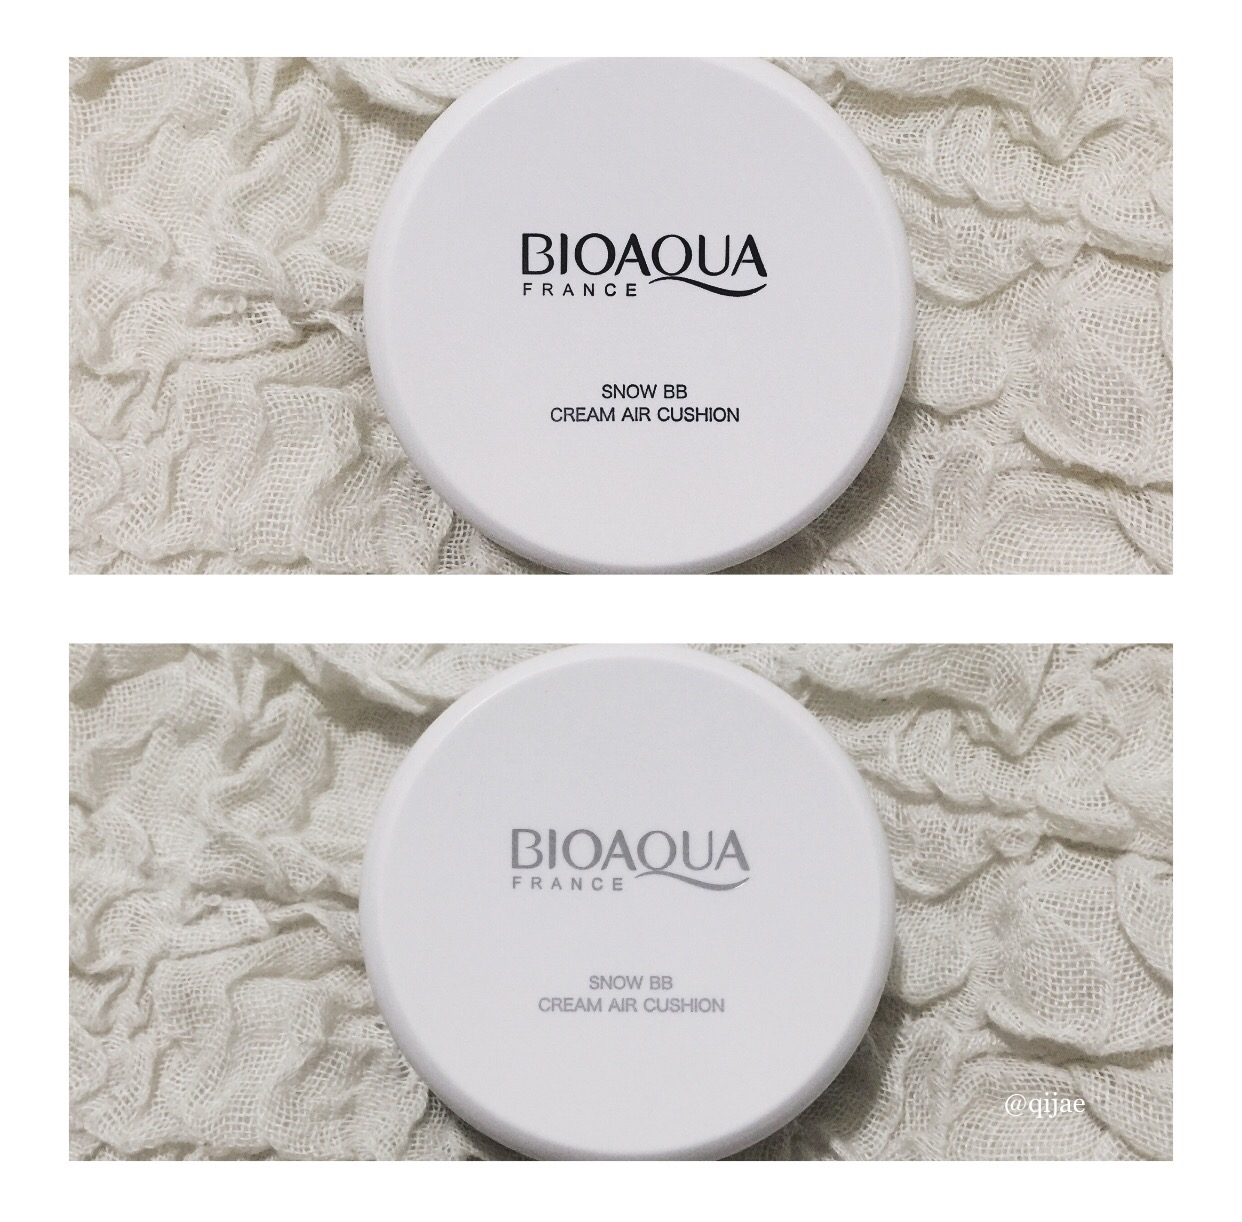 Mylifeasqijae Review Bioaqua France Cream Air Cushion Extreme Base Natural Colour 01 Box Orange Bb I Was Amazed By It Even Though Know Shouldnt But Since Im Easily Distracted With Something Like That Did Play For A Few Minutes